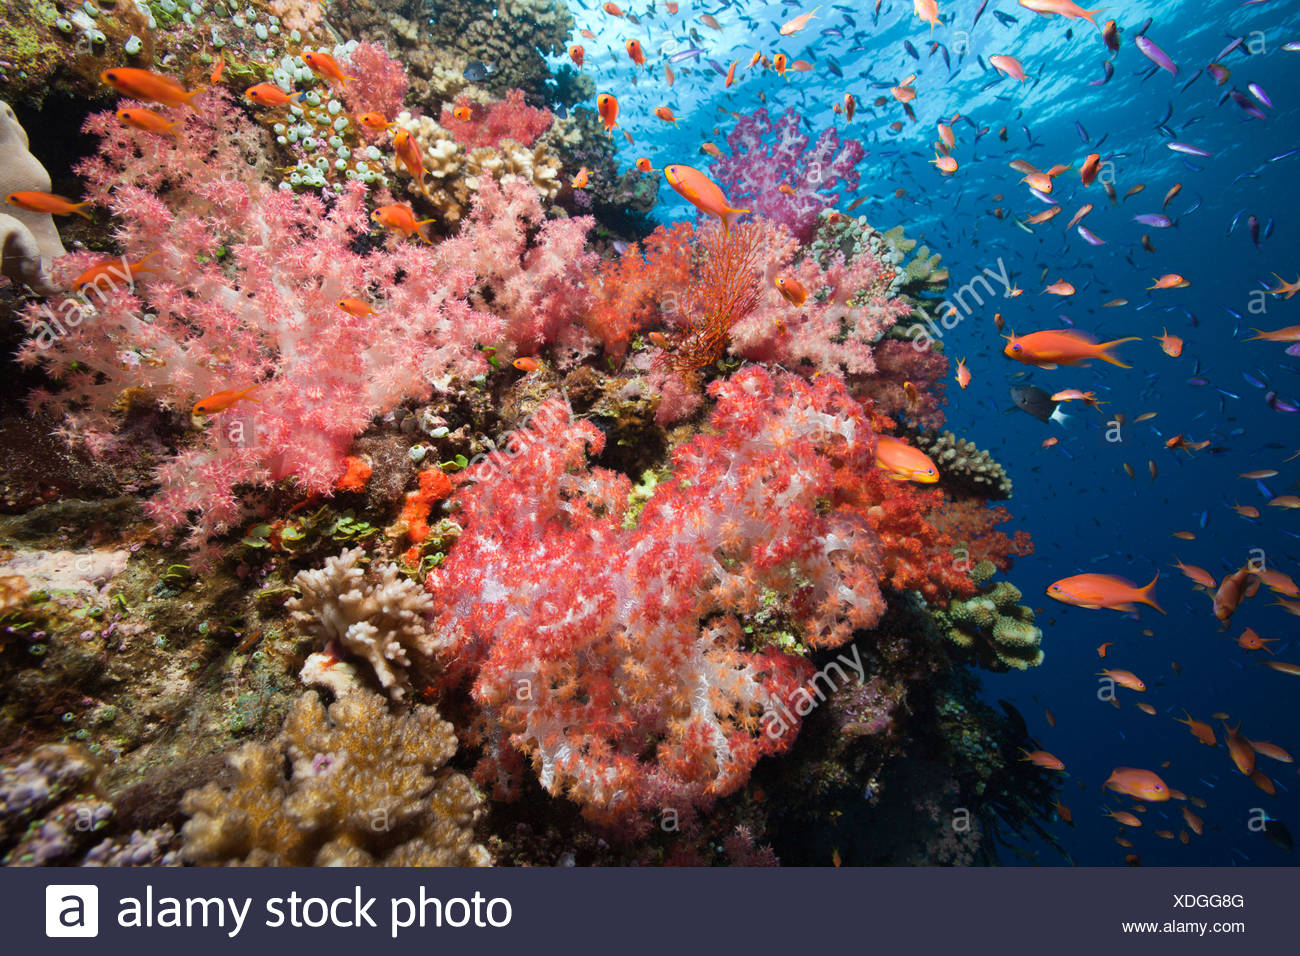 Coral Reef With Many Coloured Fish Stock Photos & Coral Reef With ...